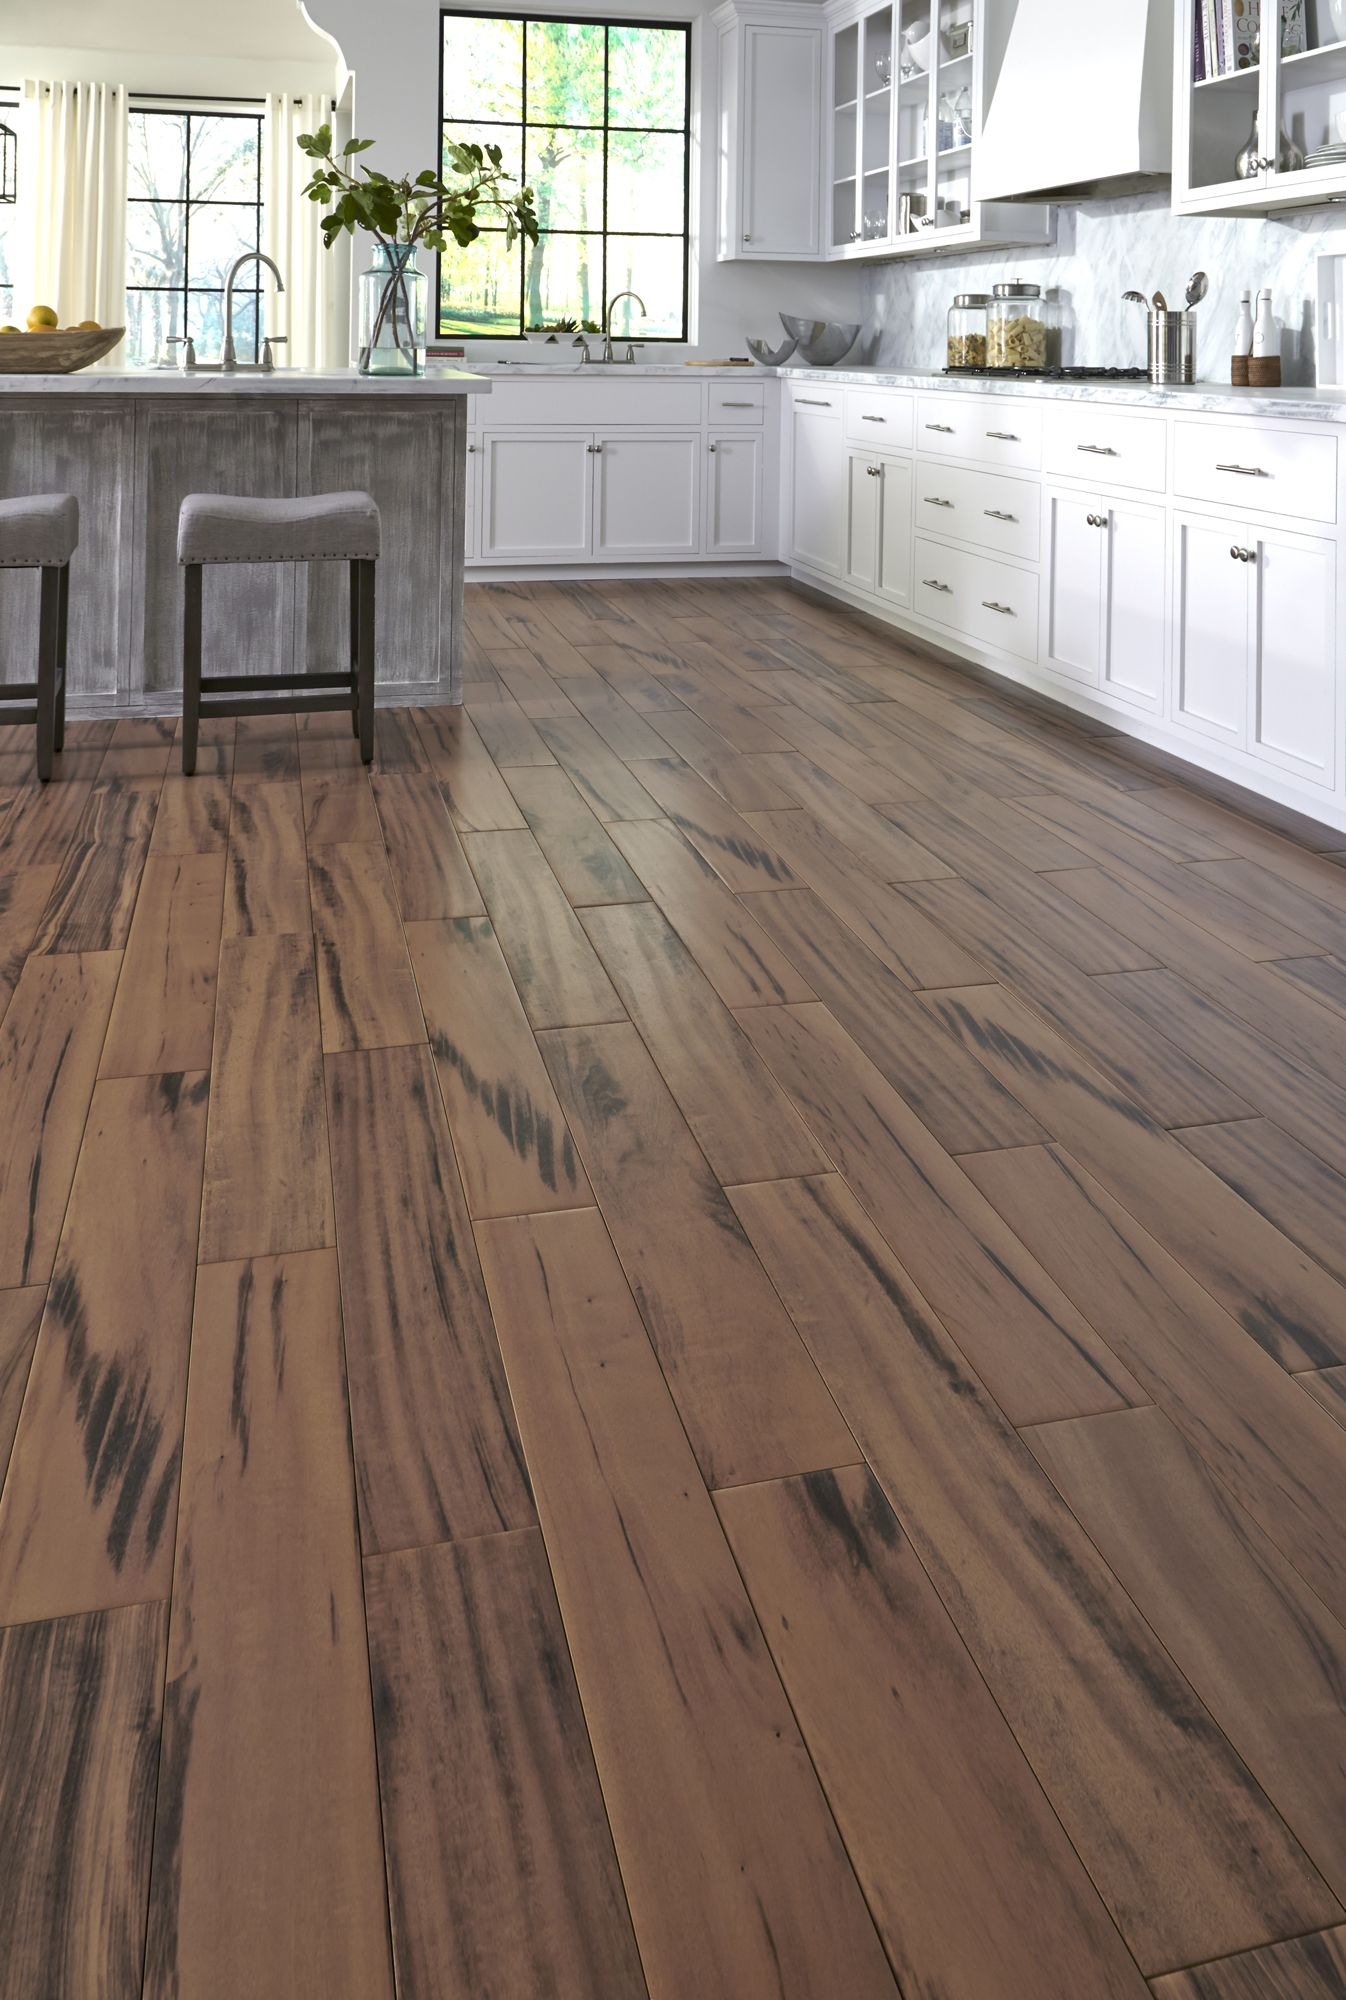 get the look of wood flooring with the application of tile waterproof avella brazilian koa is. Black Bedroom Furniture Sets. Home Design Ideas